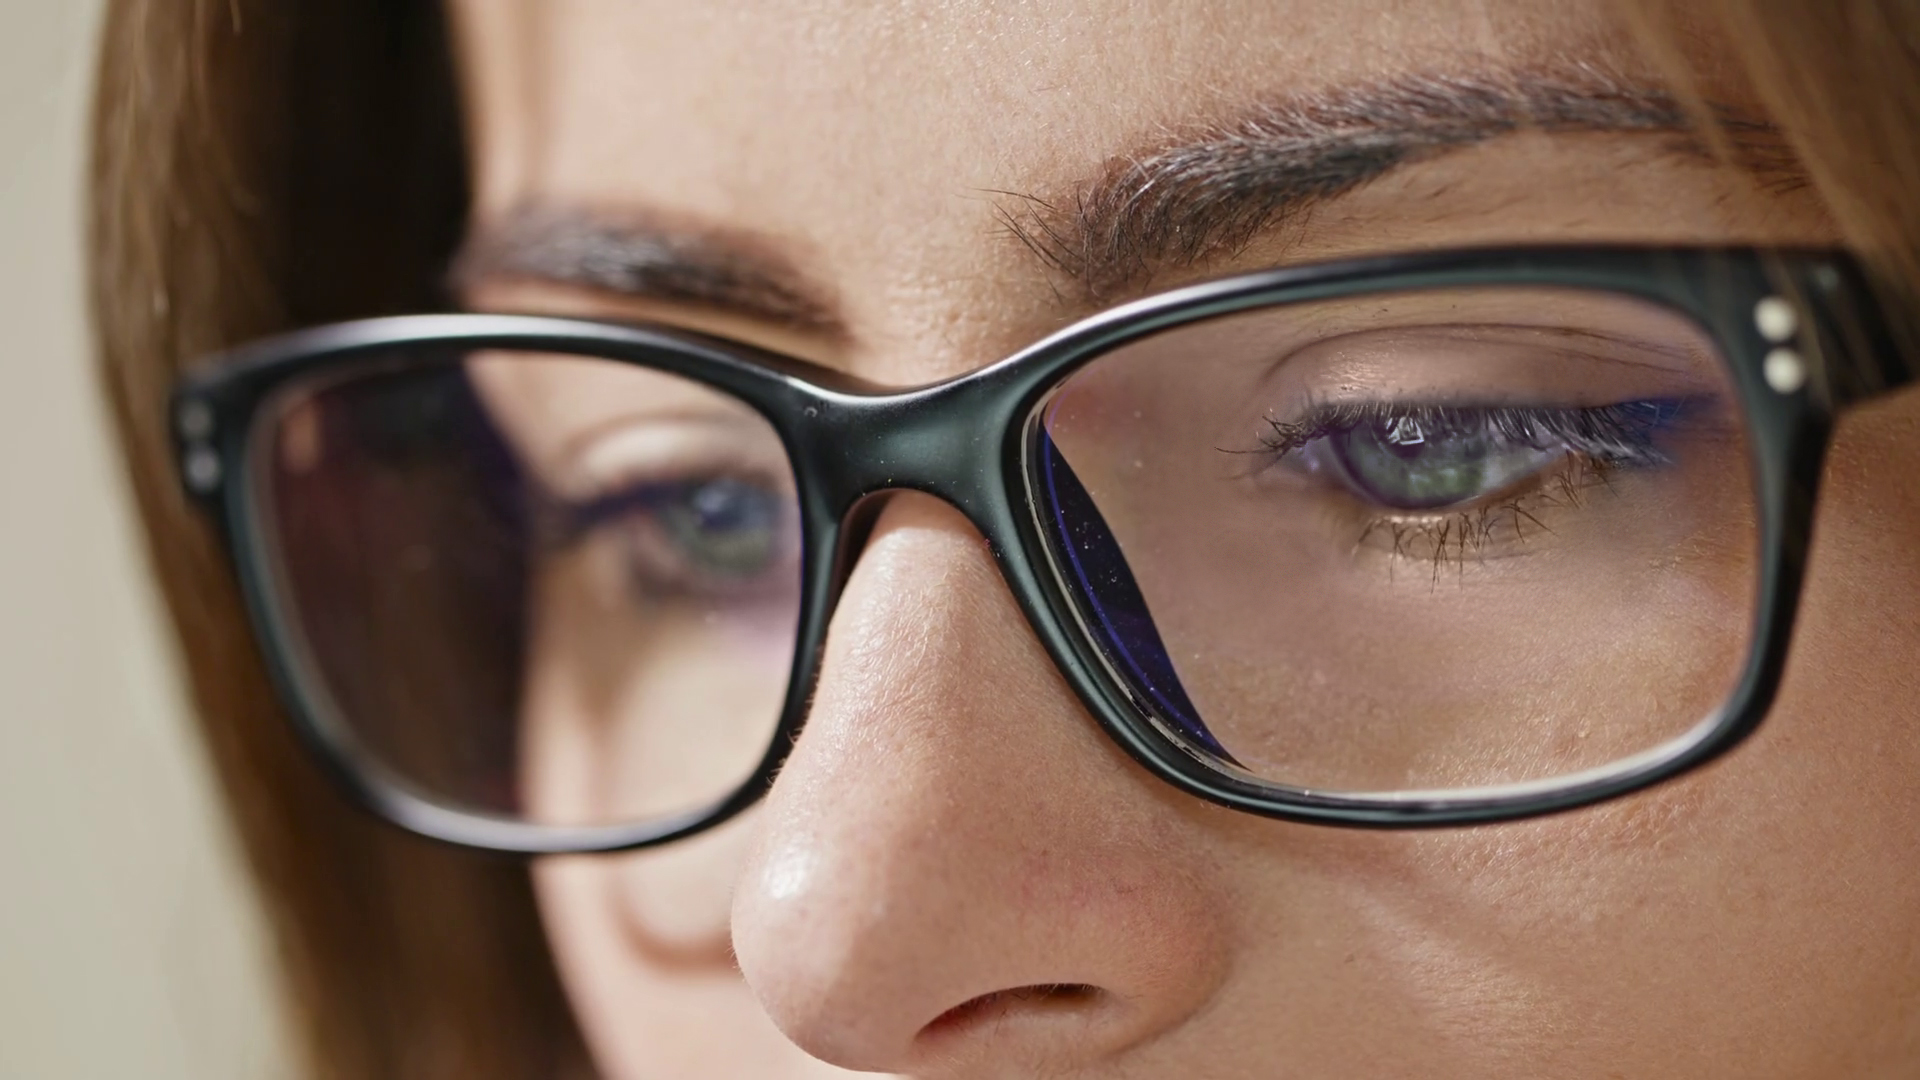 close-up-shot-of-woman-eyes-in-glasses-reflecting-a-working-computer-blue-screen_hoghlcawdx_thumbnail-full01